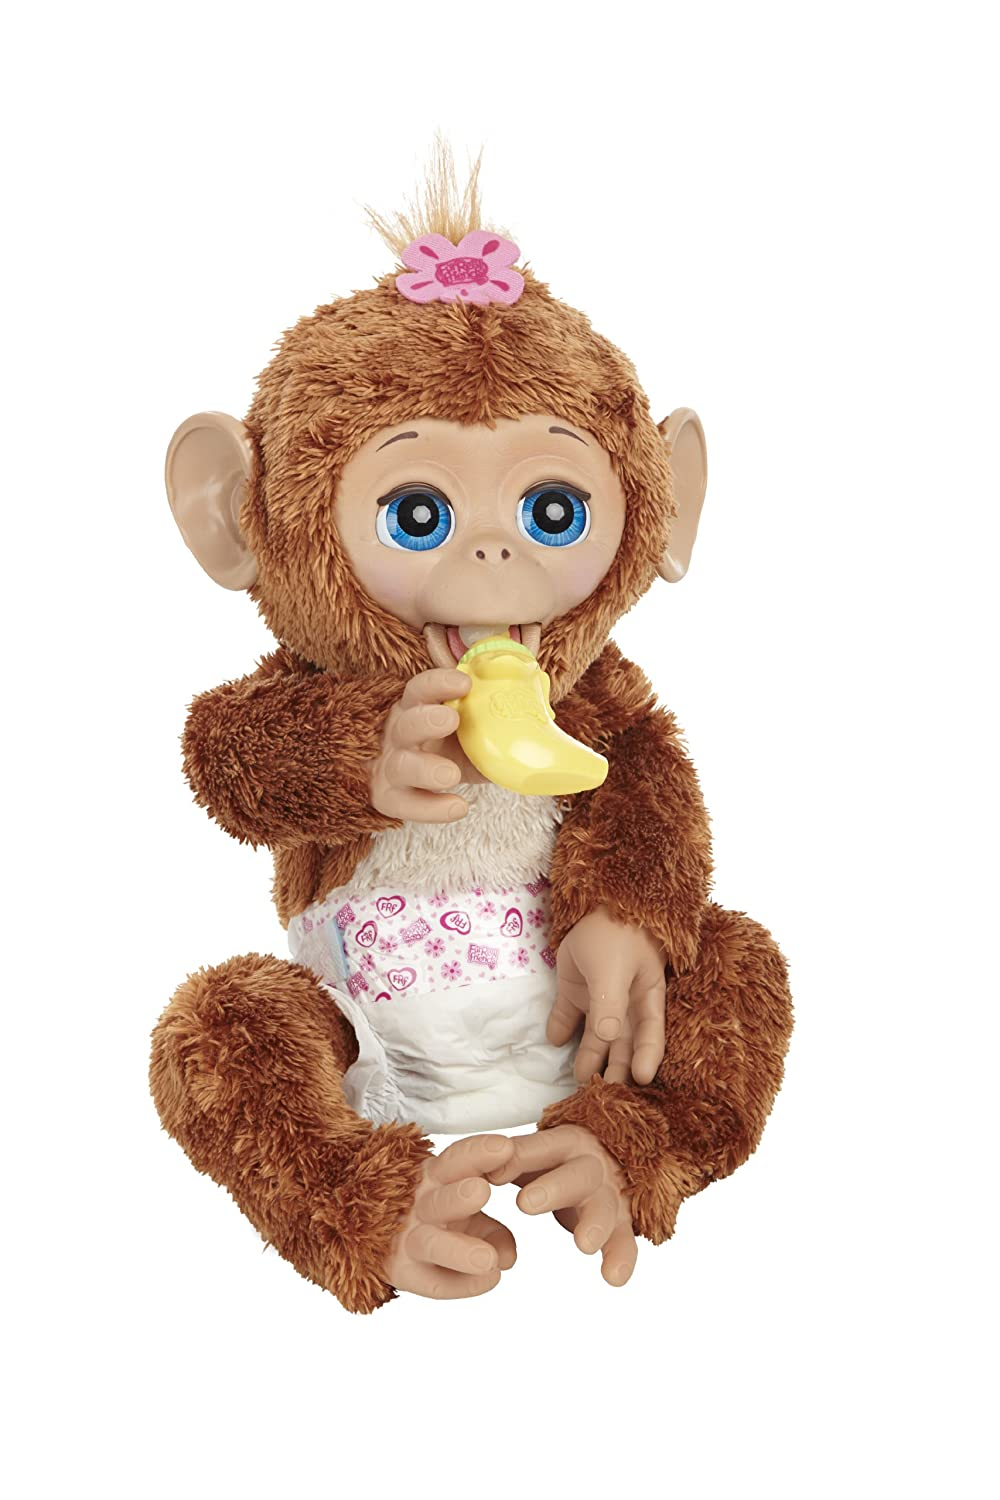 Top Furreal Friends Toys : New furreal friends cuddles my giggly monkey animal toy